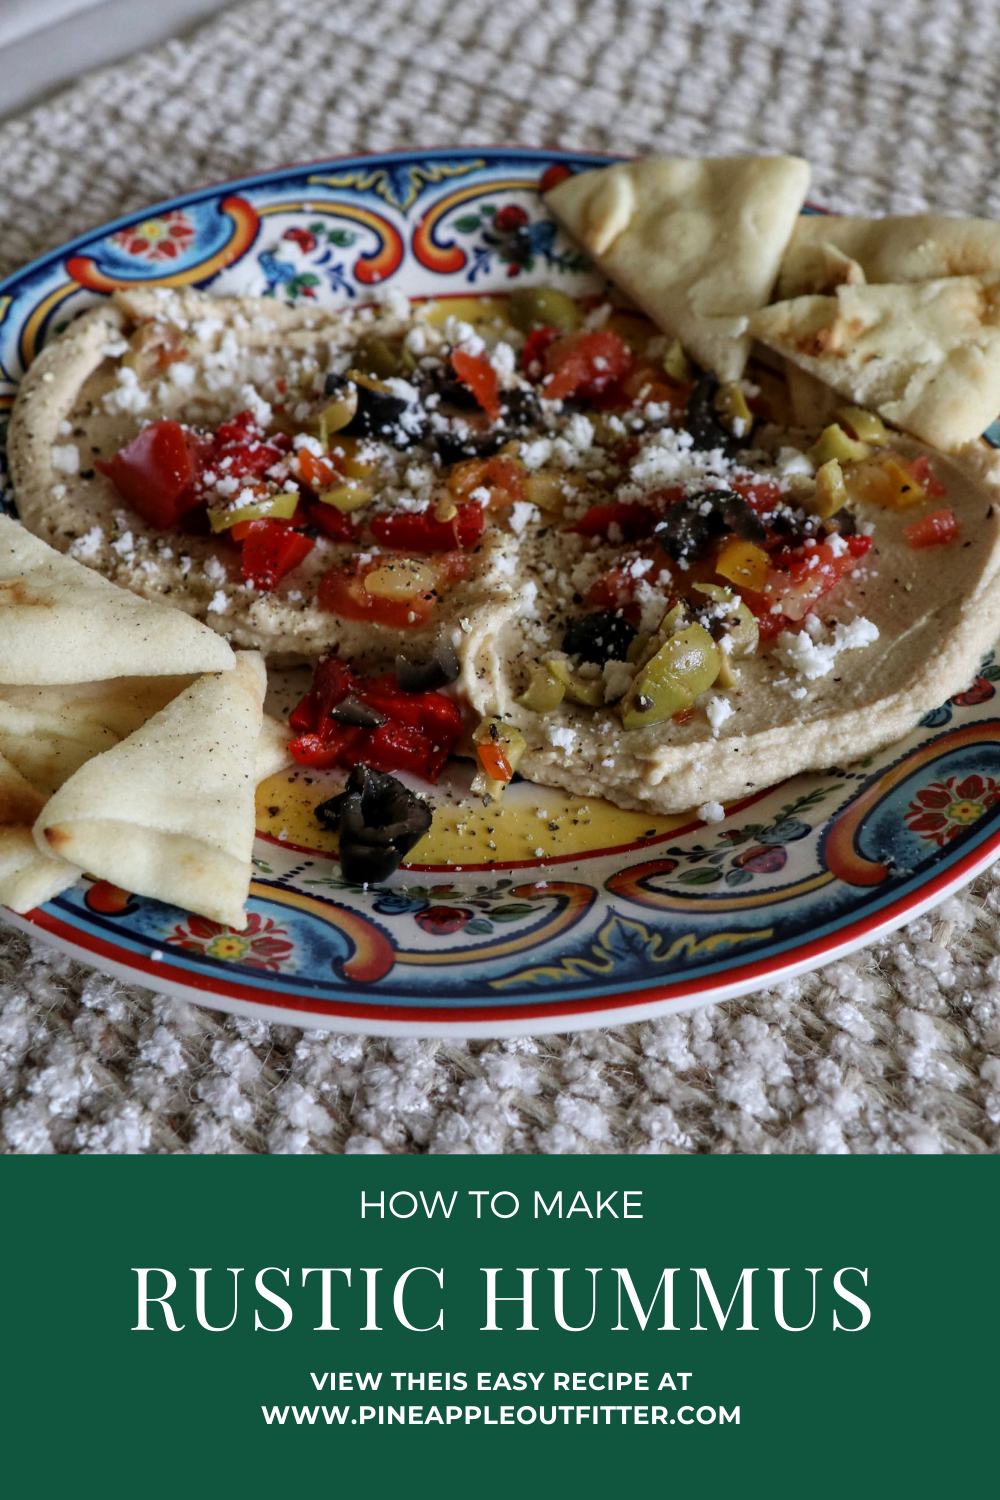 how to make rustic hummus - Cover